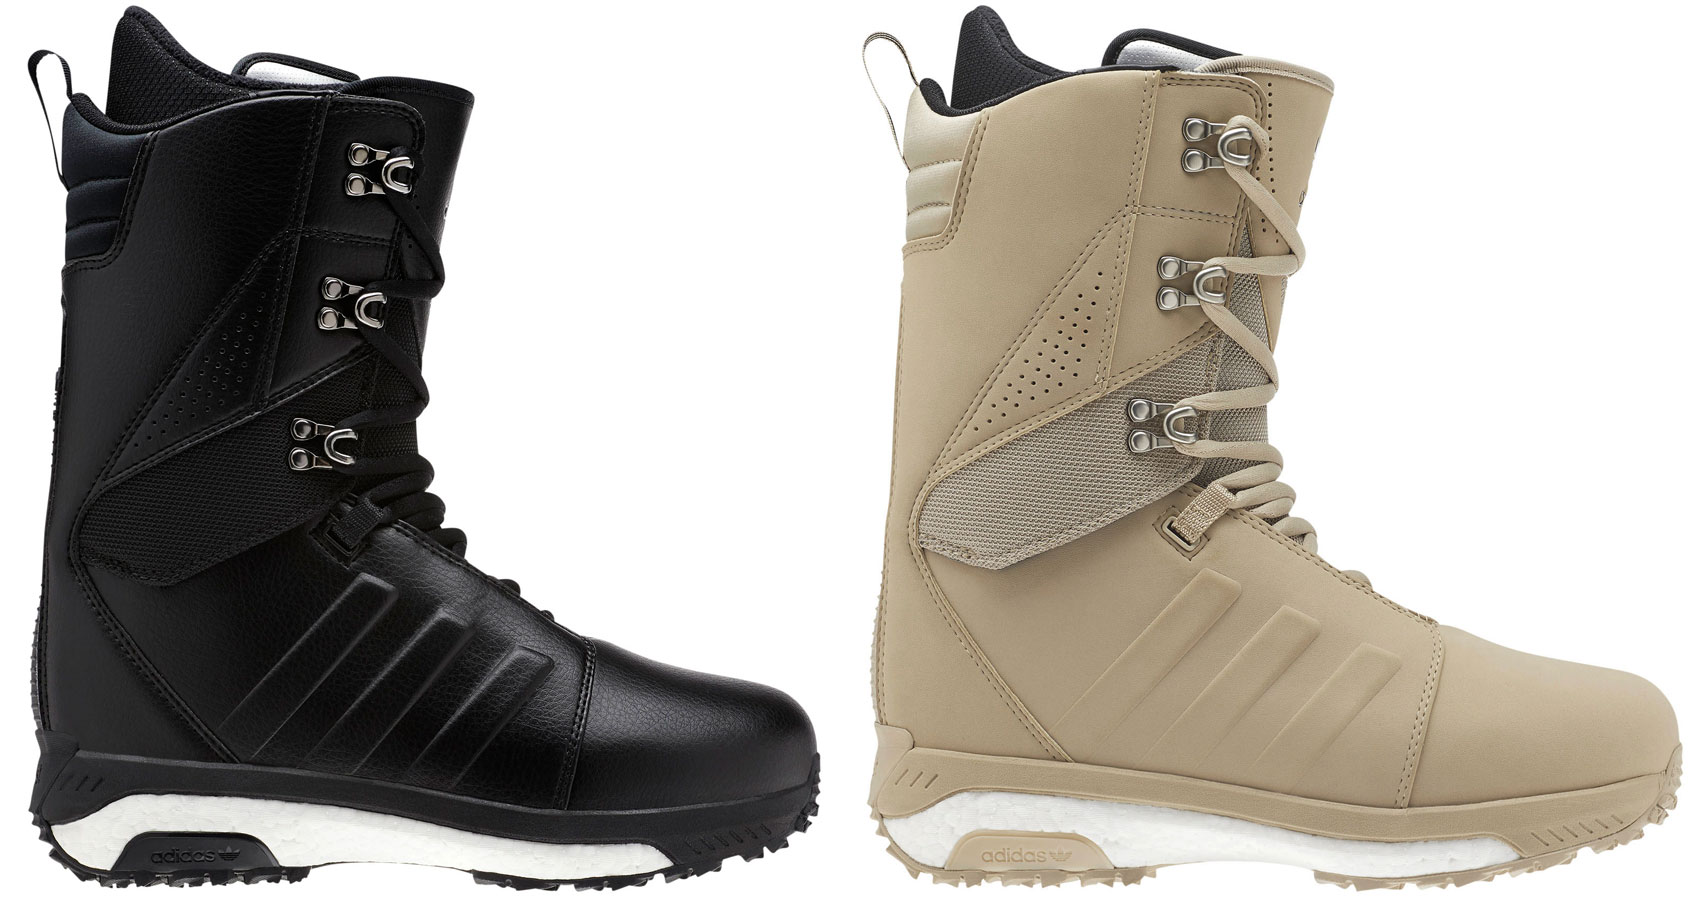 best sneakers 089f8 fd89b Sentinel Adidas Snowboard Boots - Tactical ADV - Core Black, Raw Gold,  Boost Sole -